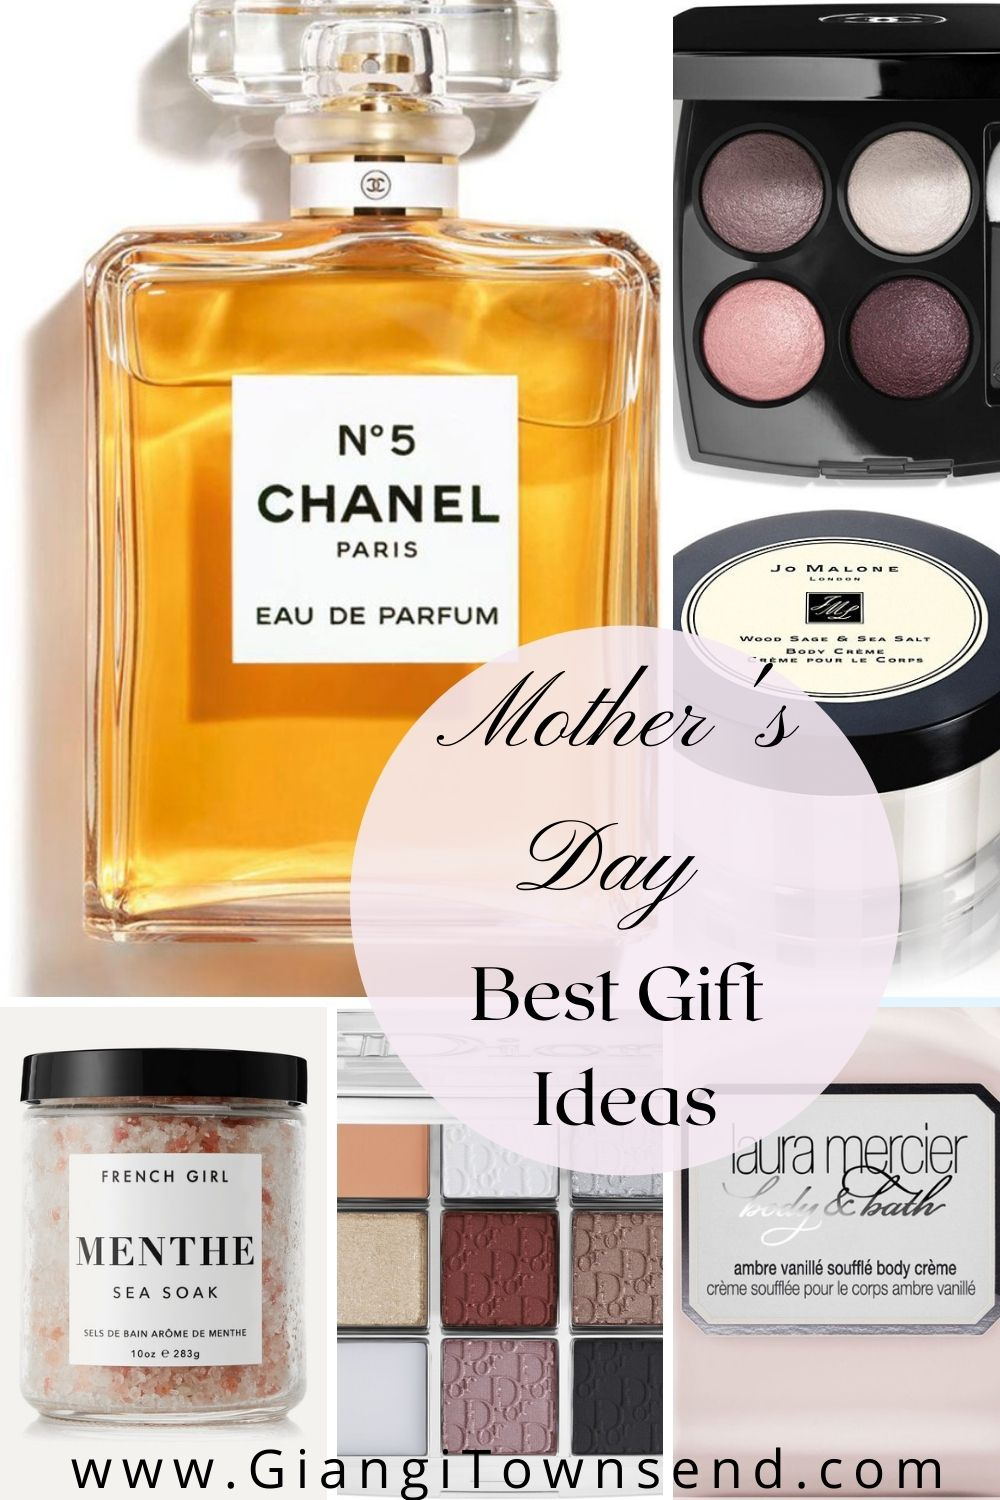 Mother's Day Best Gift Ideas